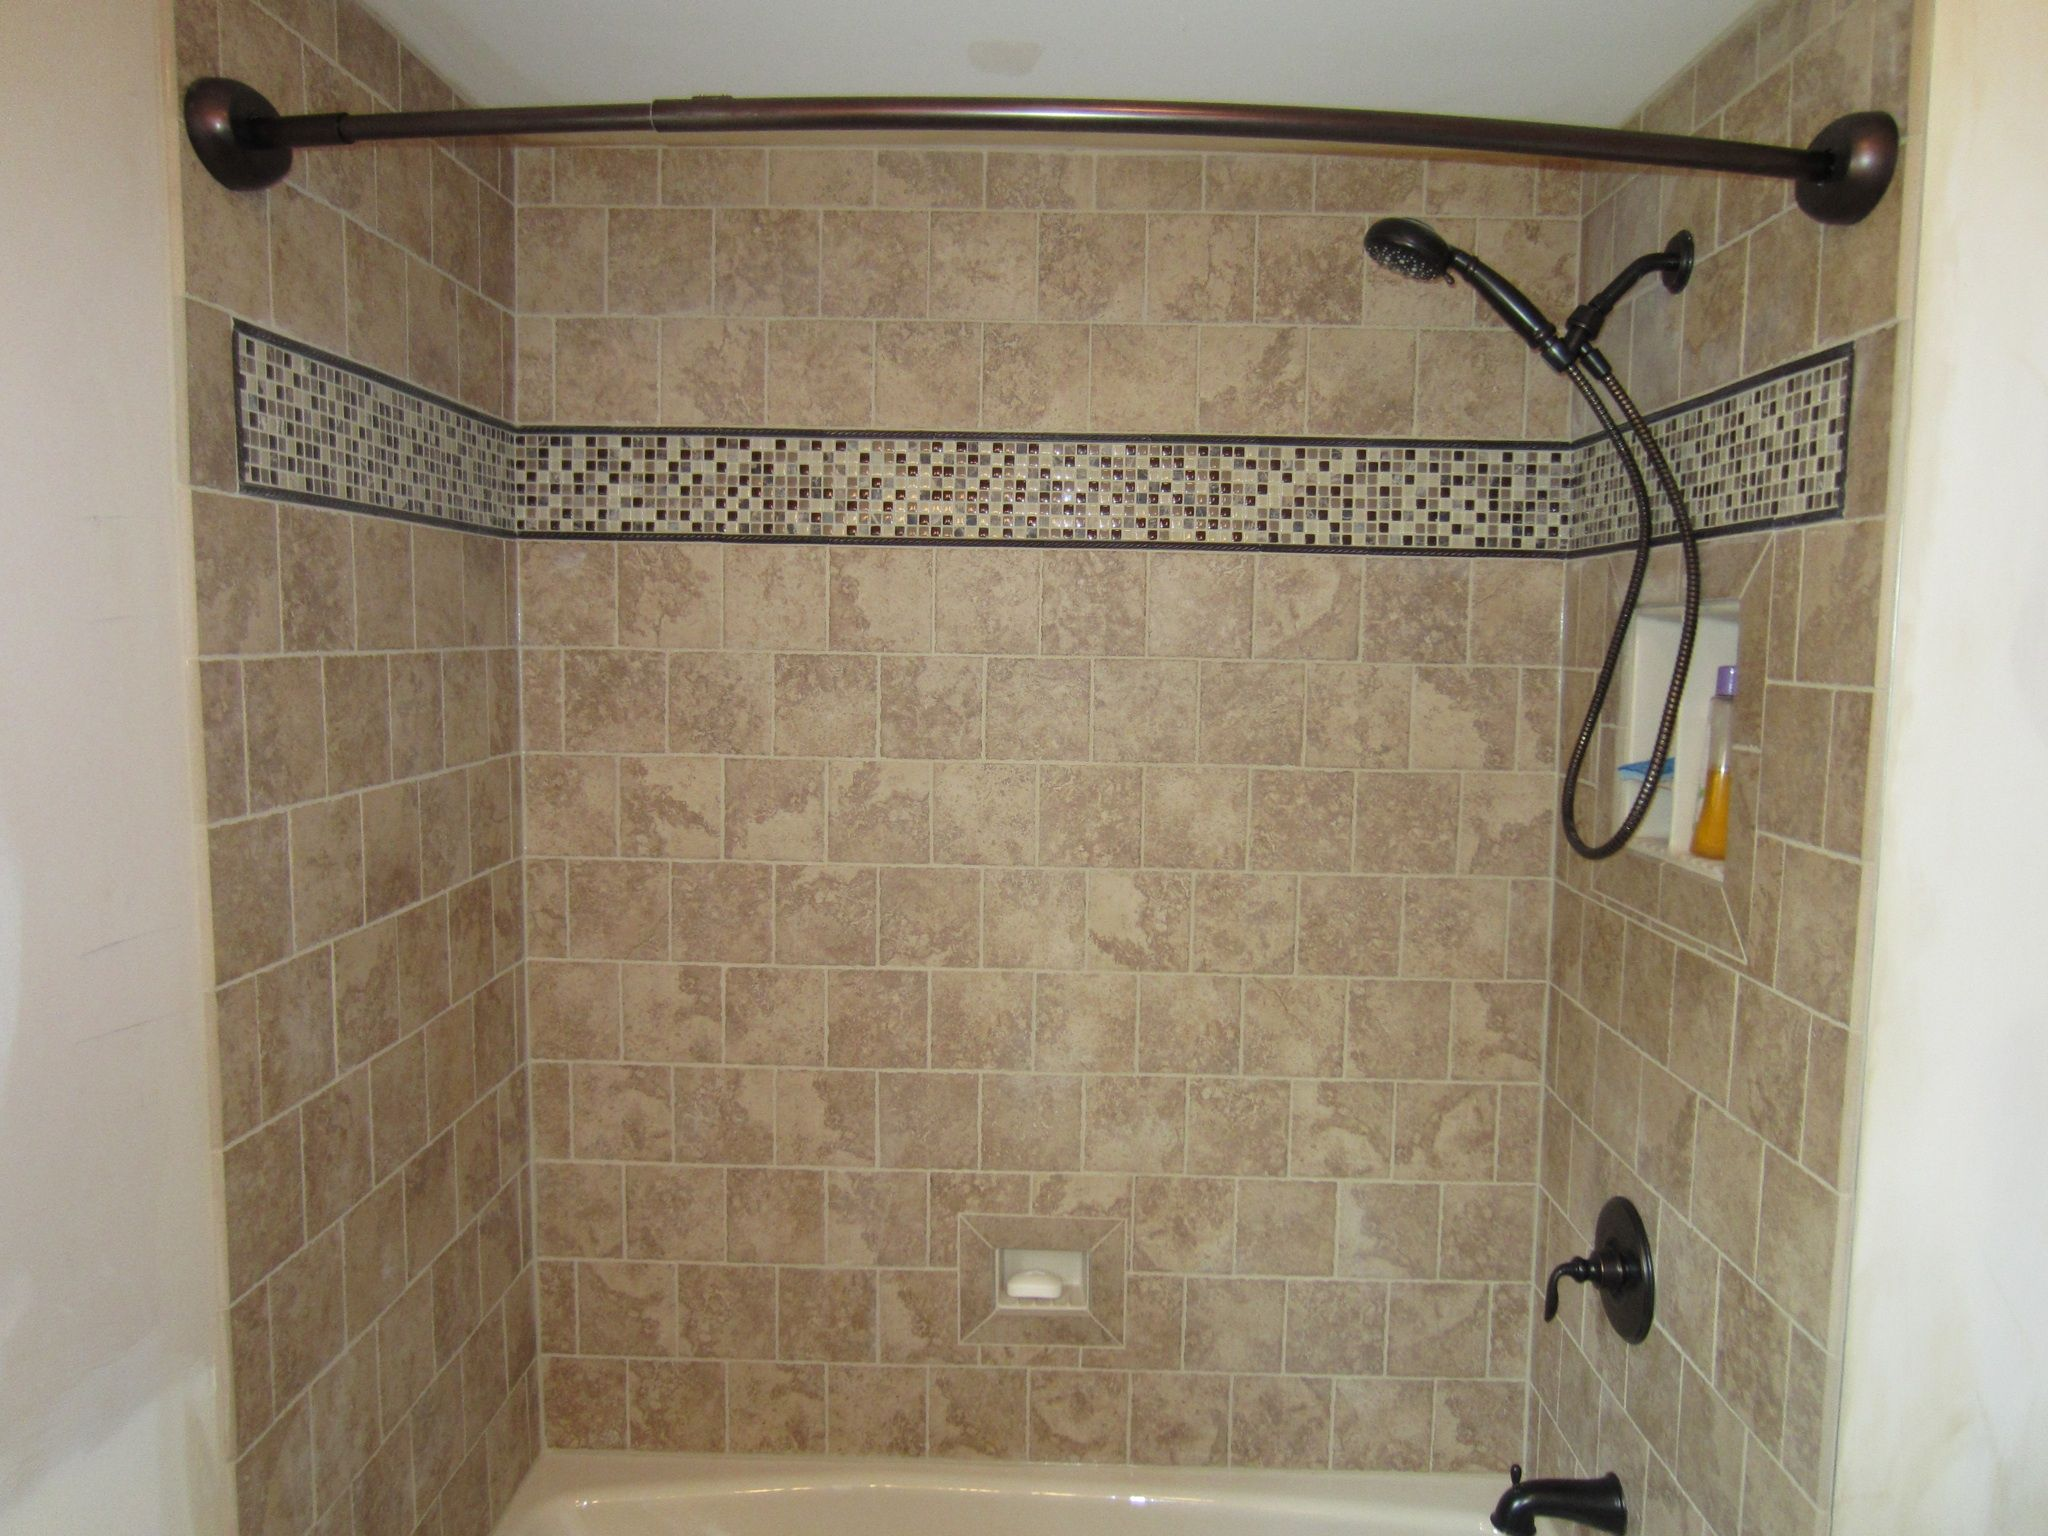 We installed all new tiles on the wall, a new tub, recessed shower ...